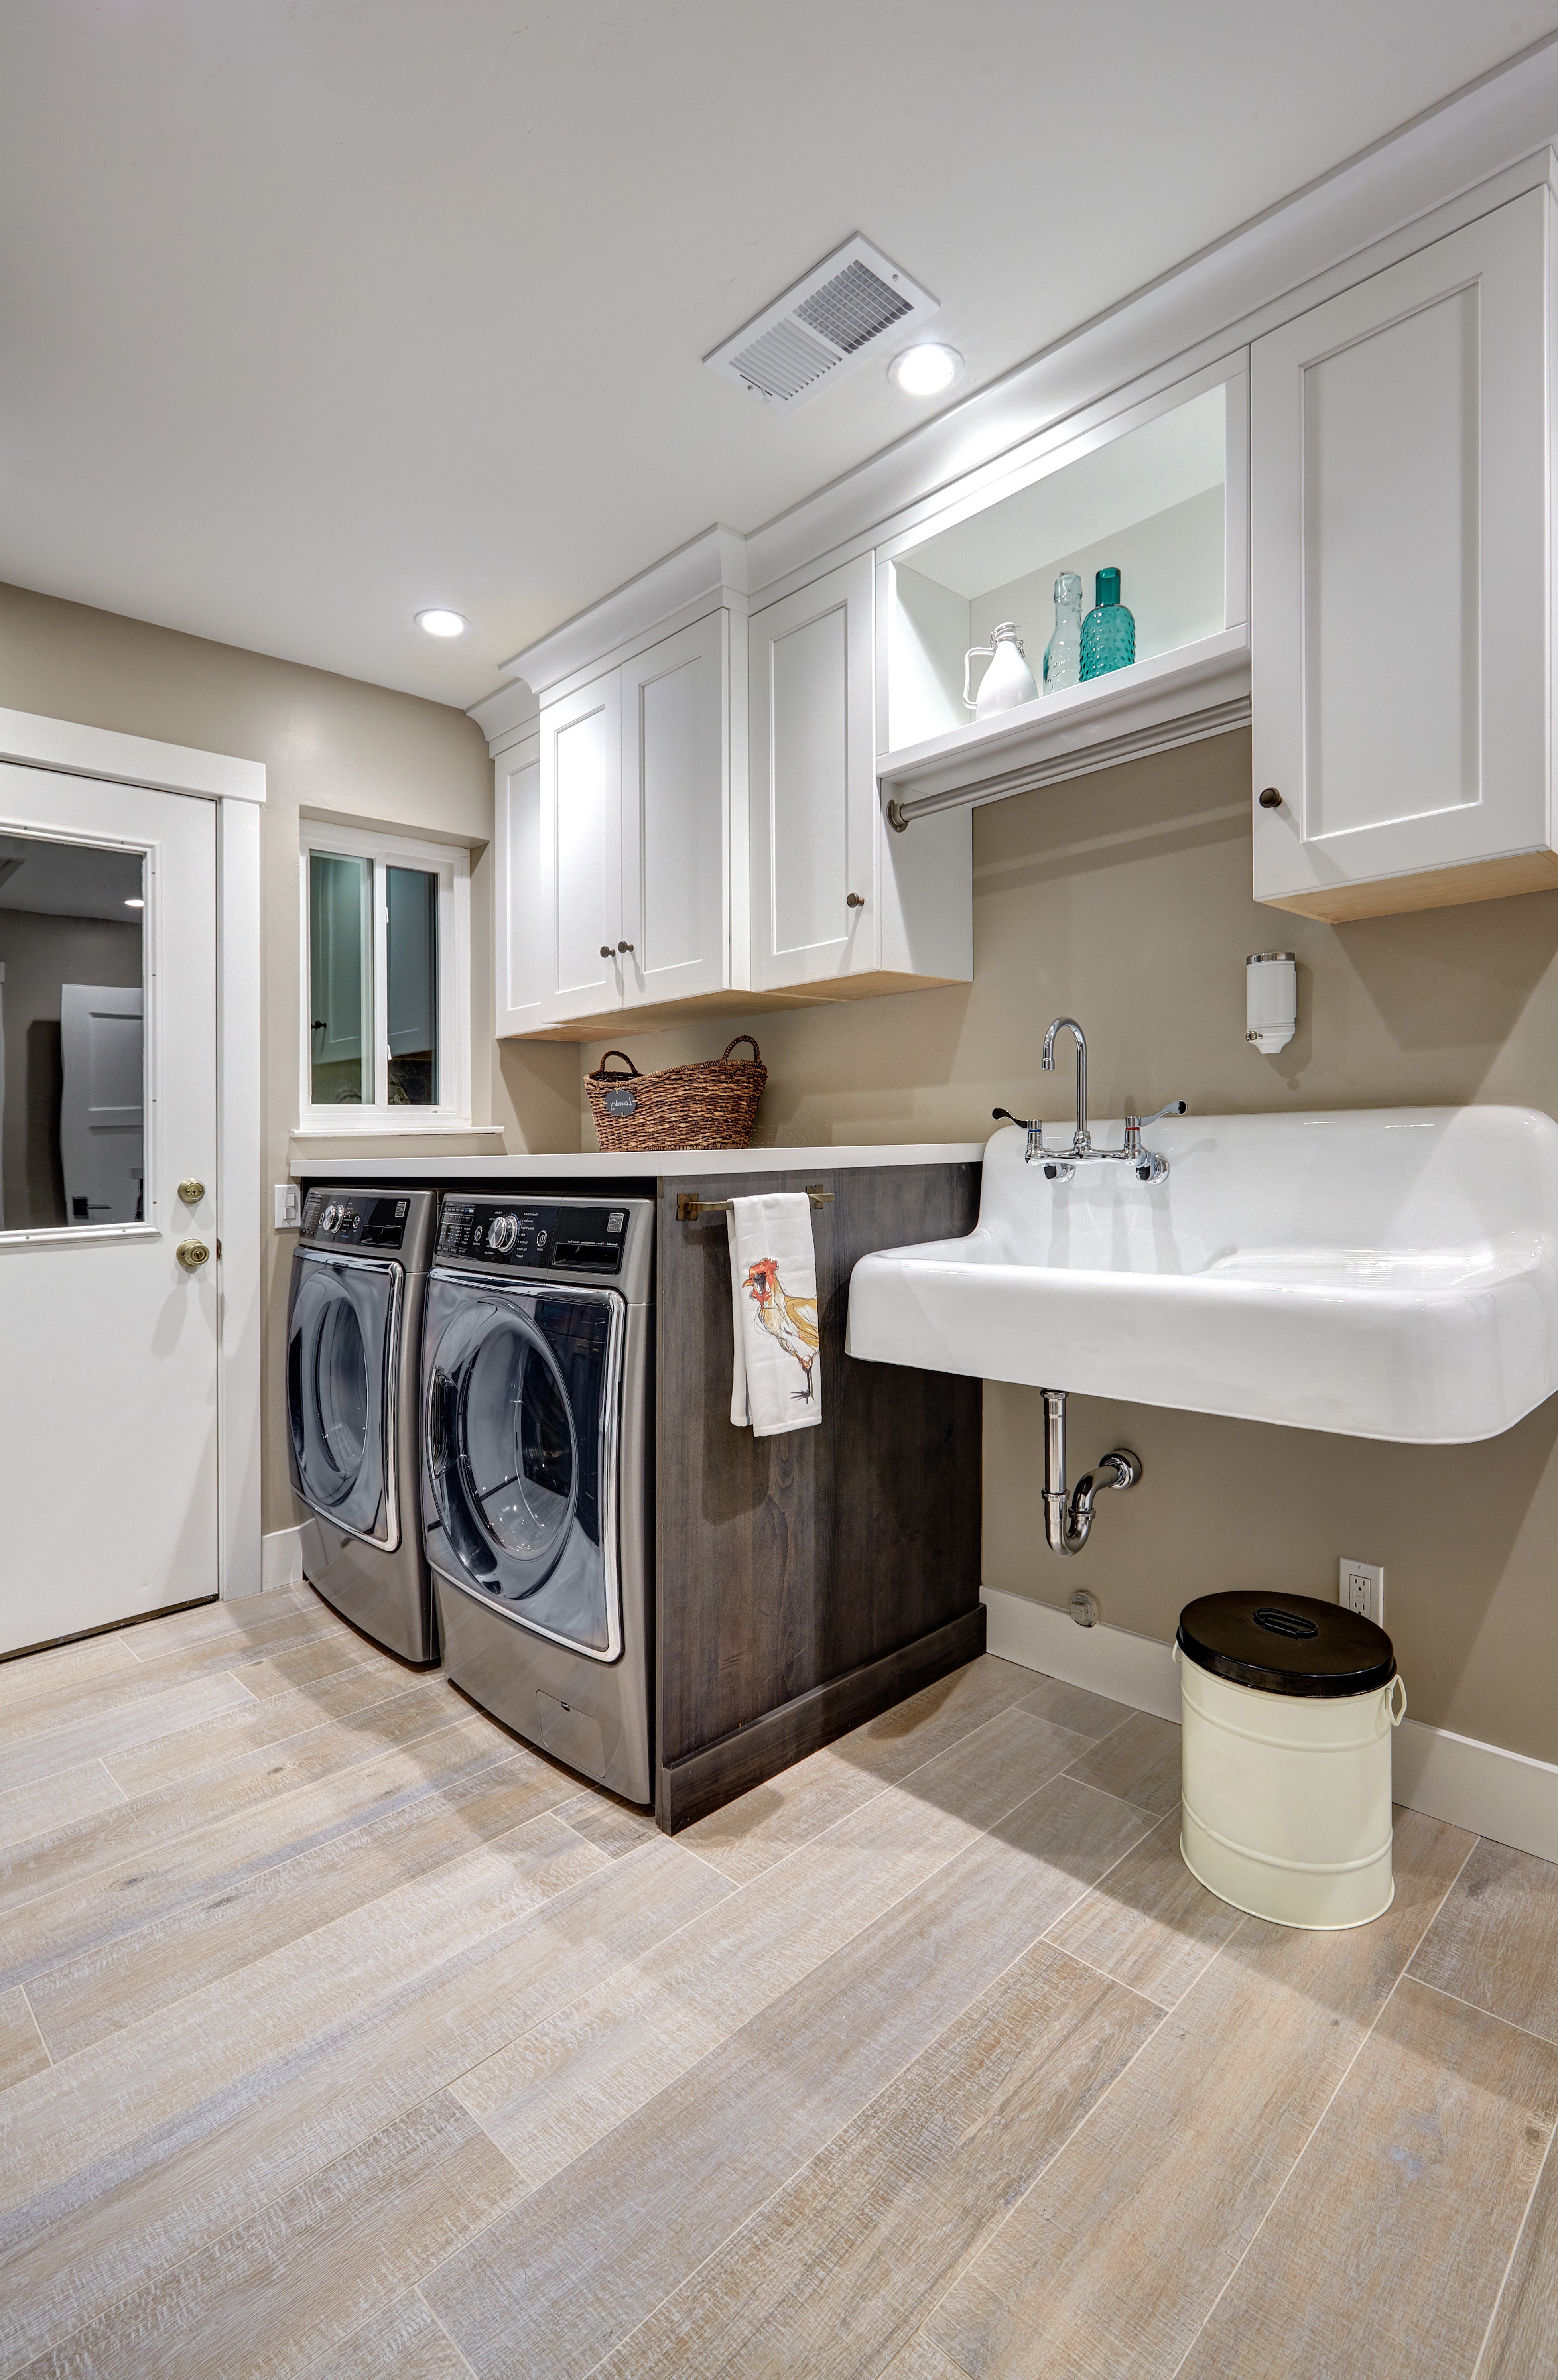 Laundry Room With Plenty Of Space (Image 12 of 26)